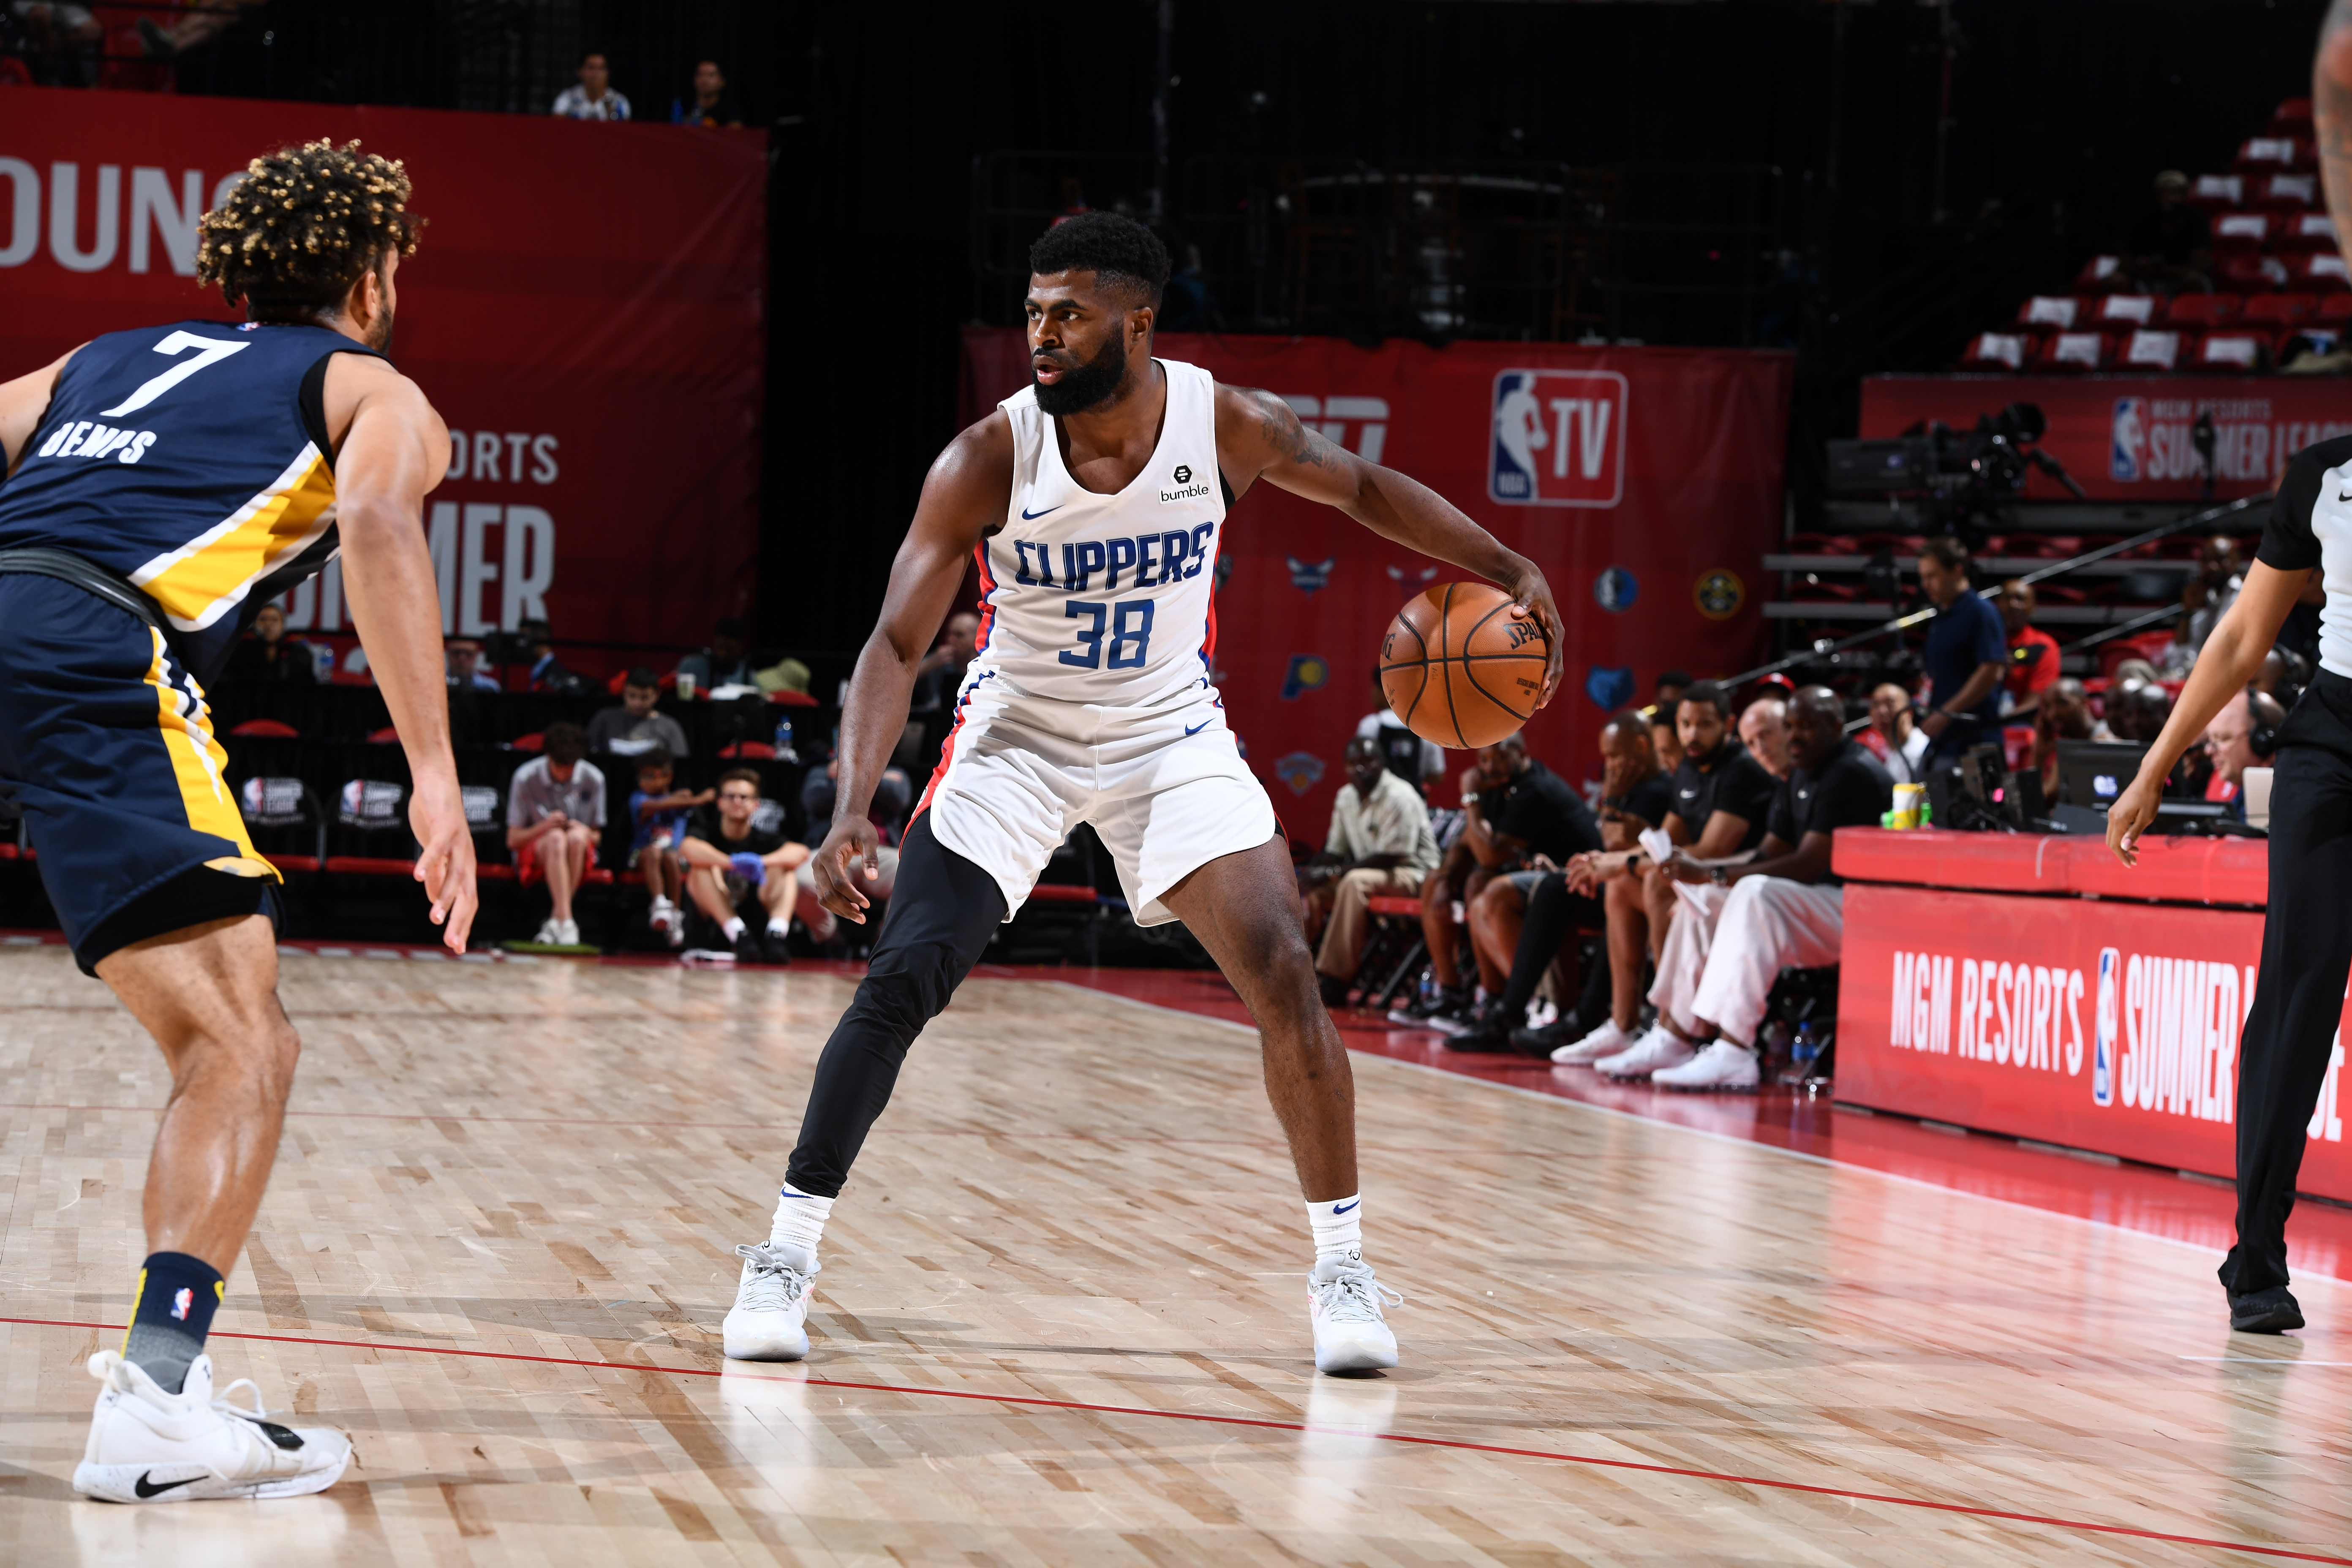 2019 Las Vegas Summer League - Day 8 - Indiana Pacers v LA Clippers